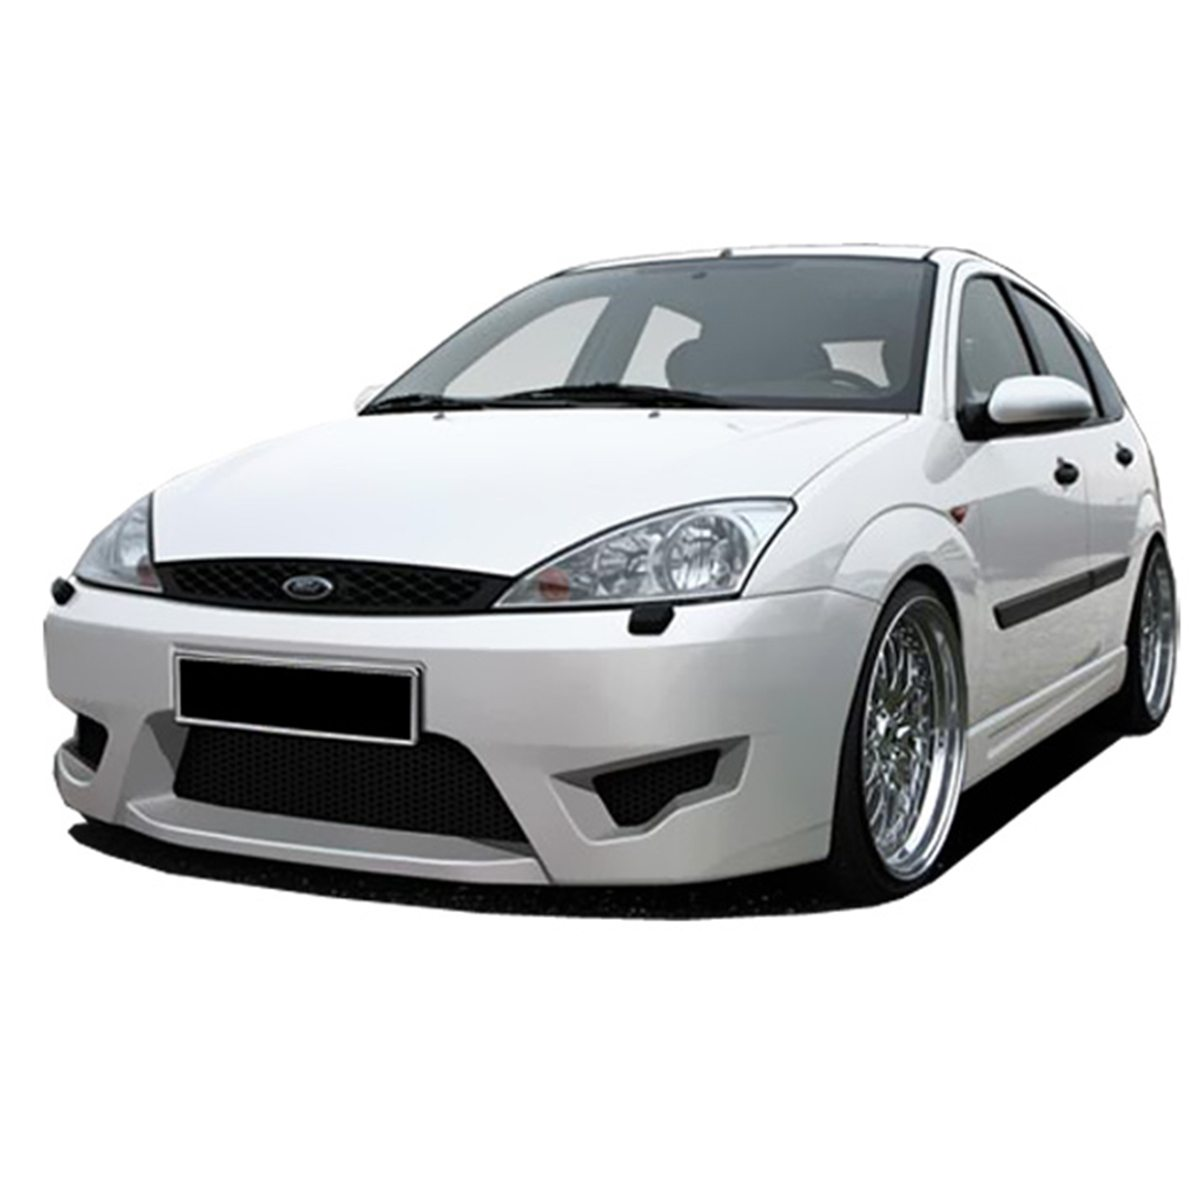 Ford-Focus-Hendrix-frt-PCS081